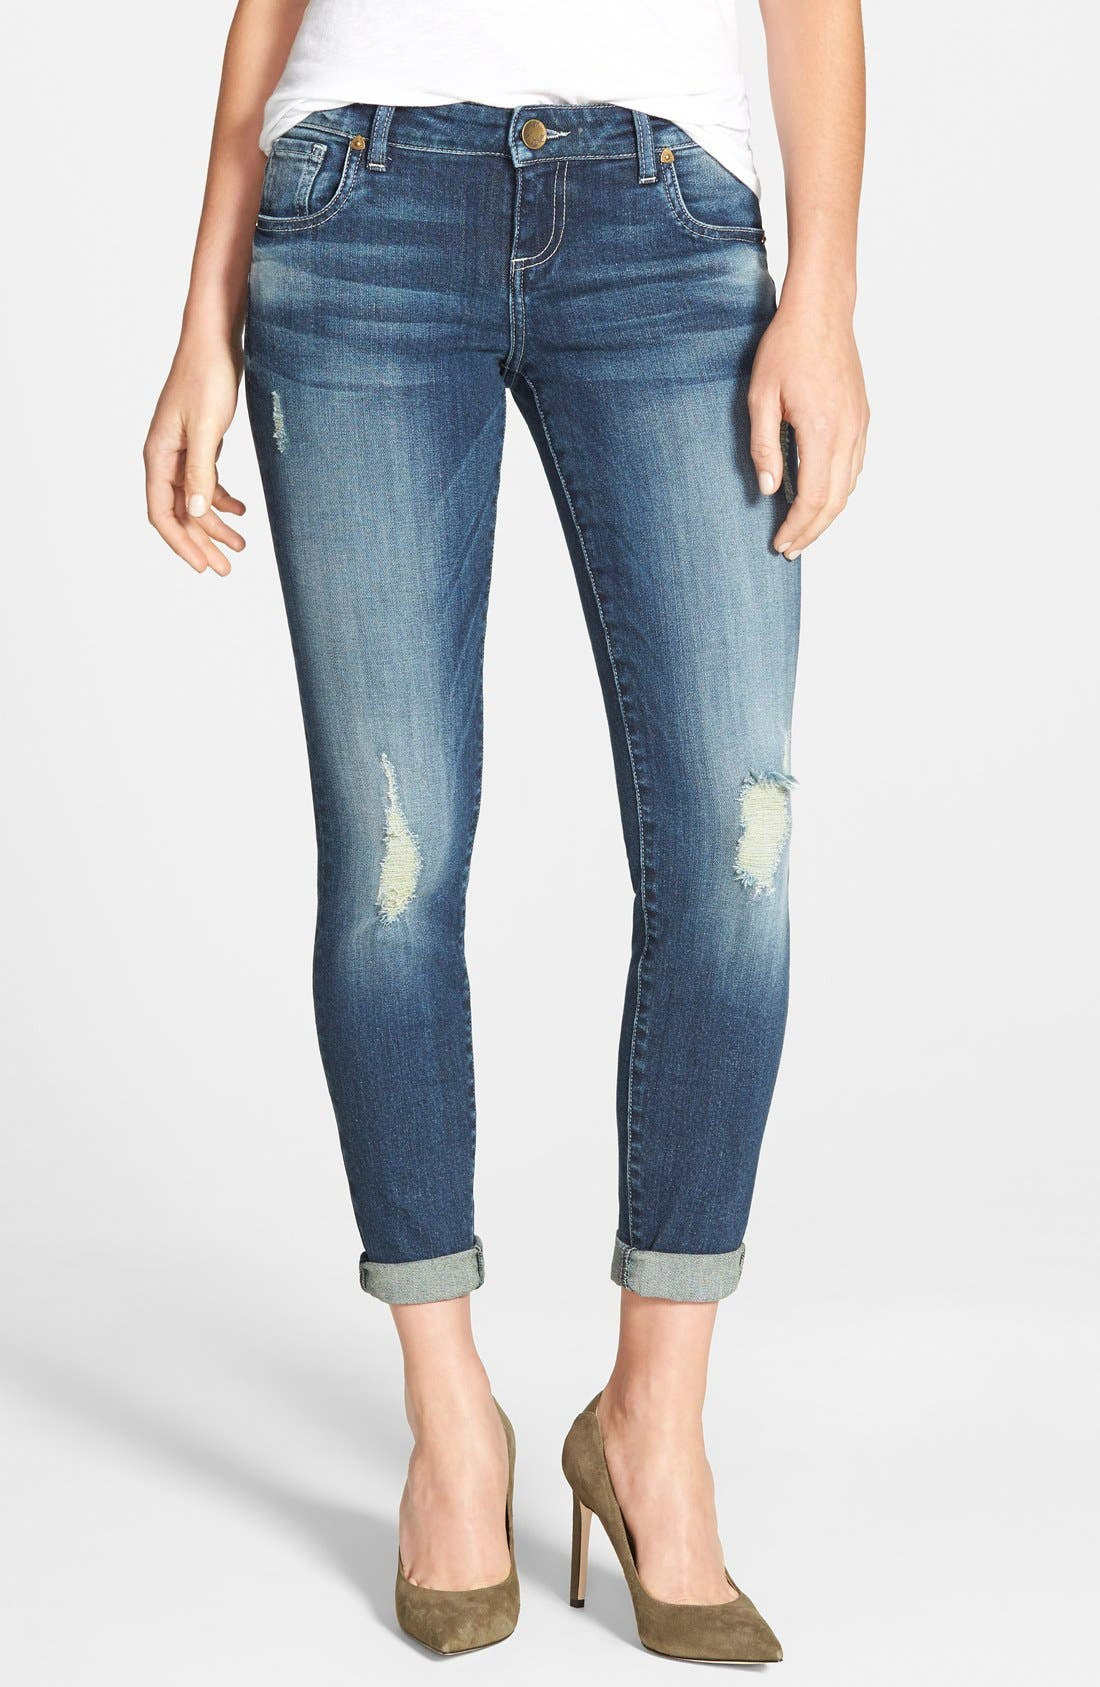 Alternate Image 1 Selected - KUT from the Kloth 'Adele' Distressed Slouchy Boyfriend Jeans (Close)